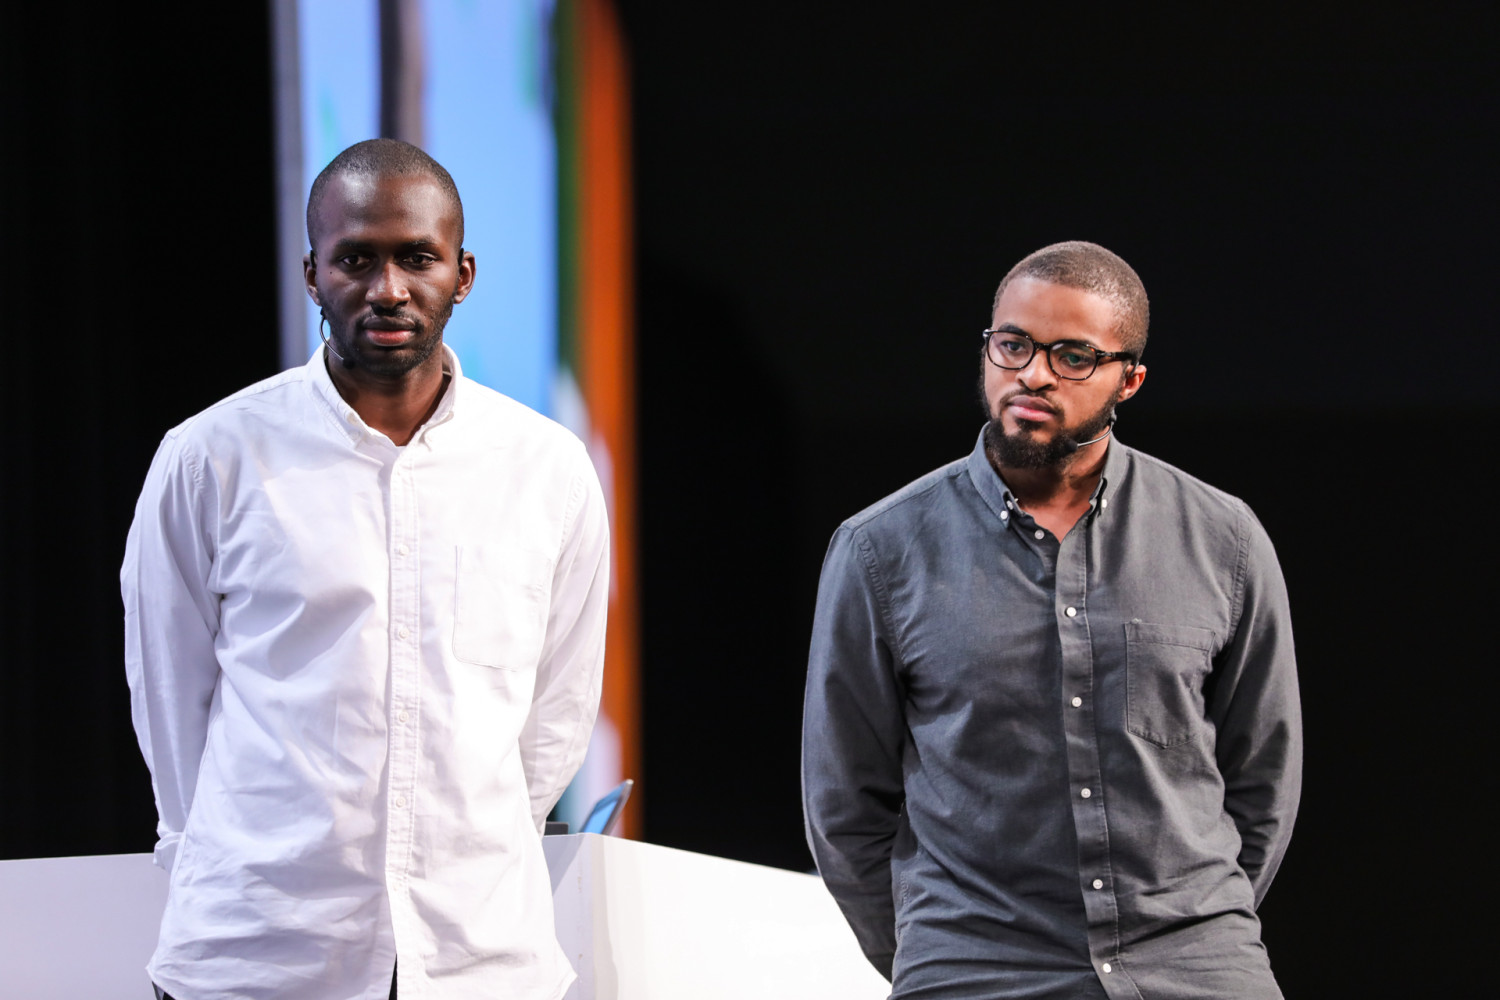 Demilade Ademuson and Obinna Okwodu, Cofounder and CEO of Fibre respectively